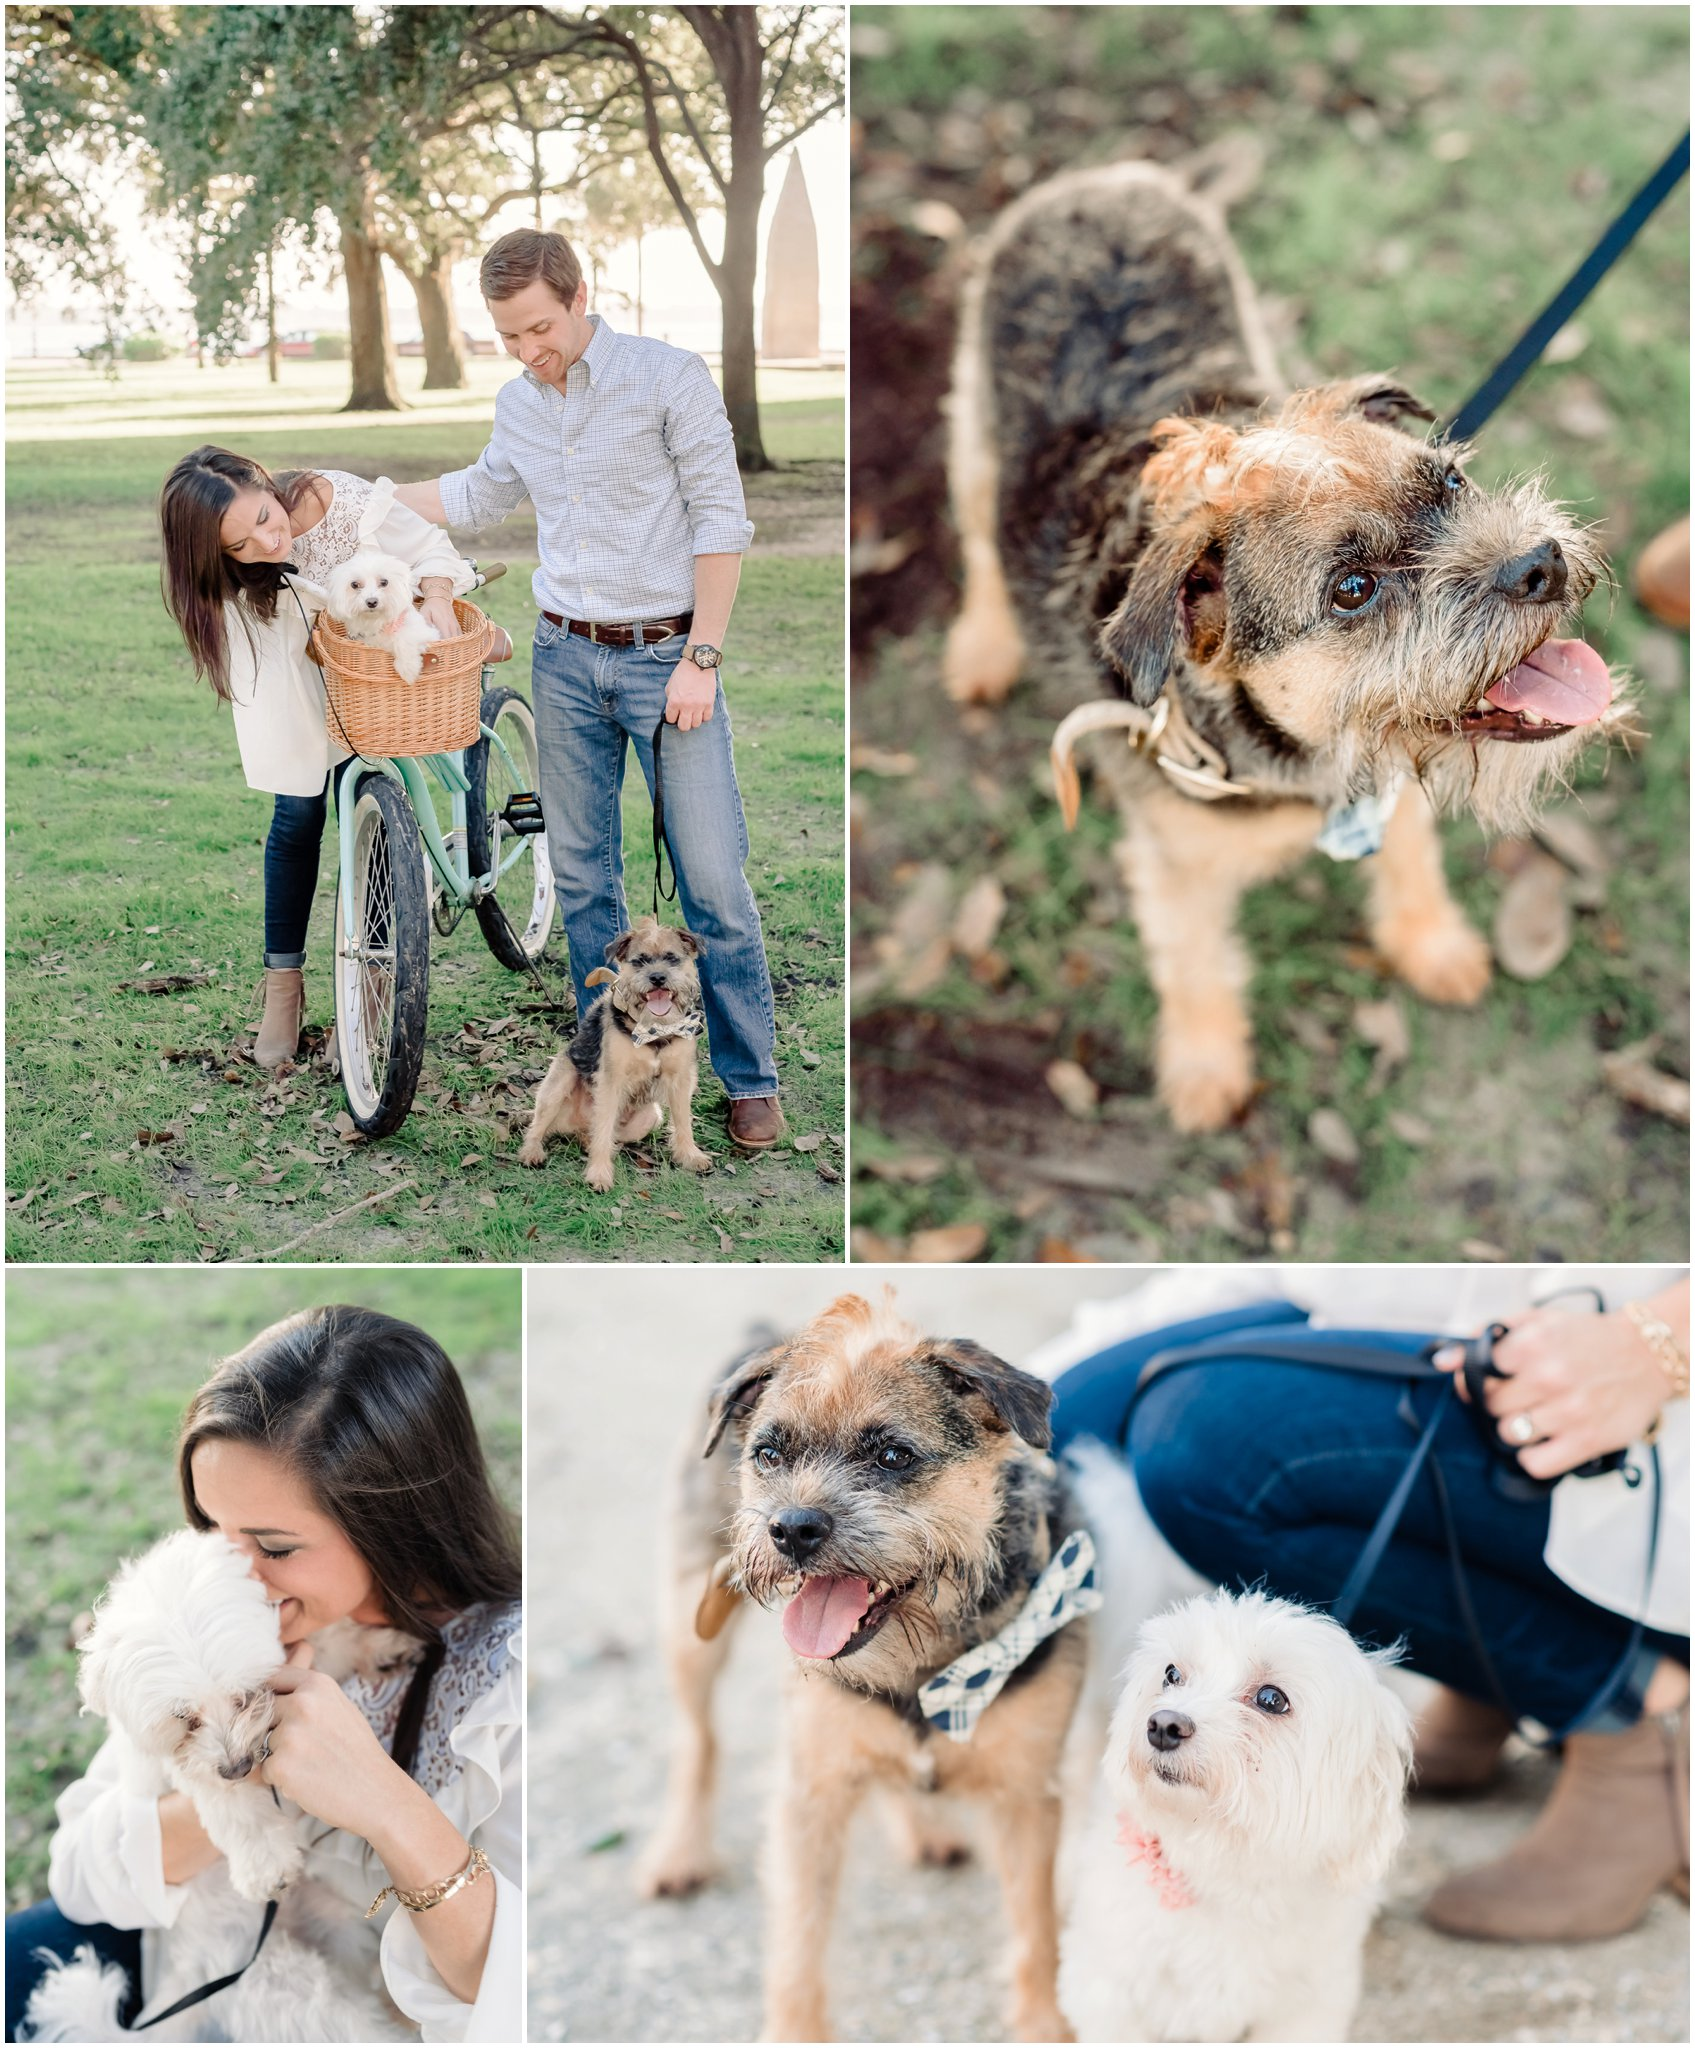 Engagement photos at White Point Garden, Laid back and sweet engagement photos with dogs and bicycle, Downtown Charleston SC Engagement Photographer